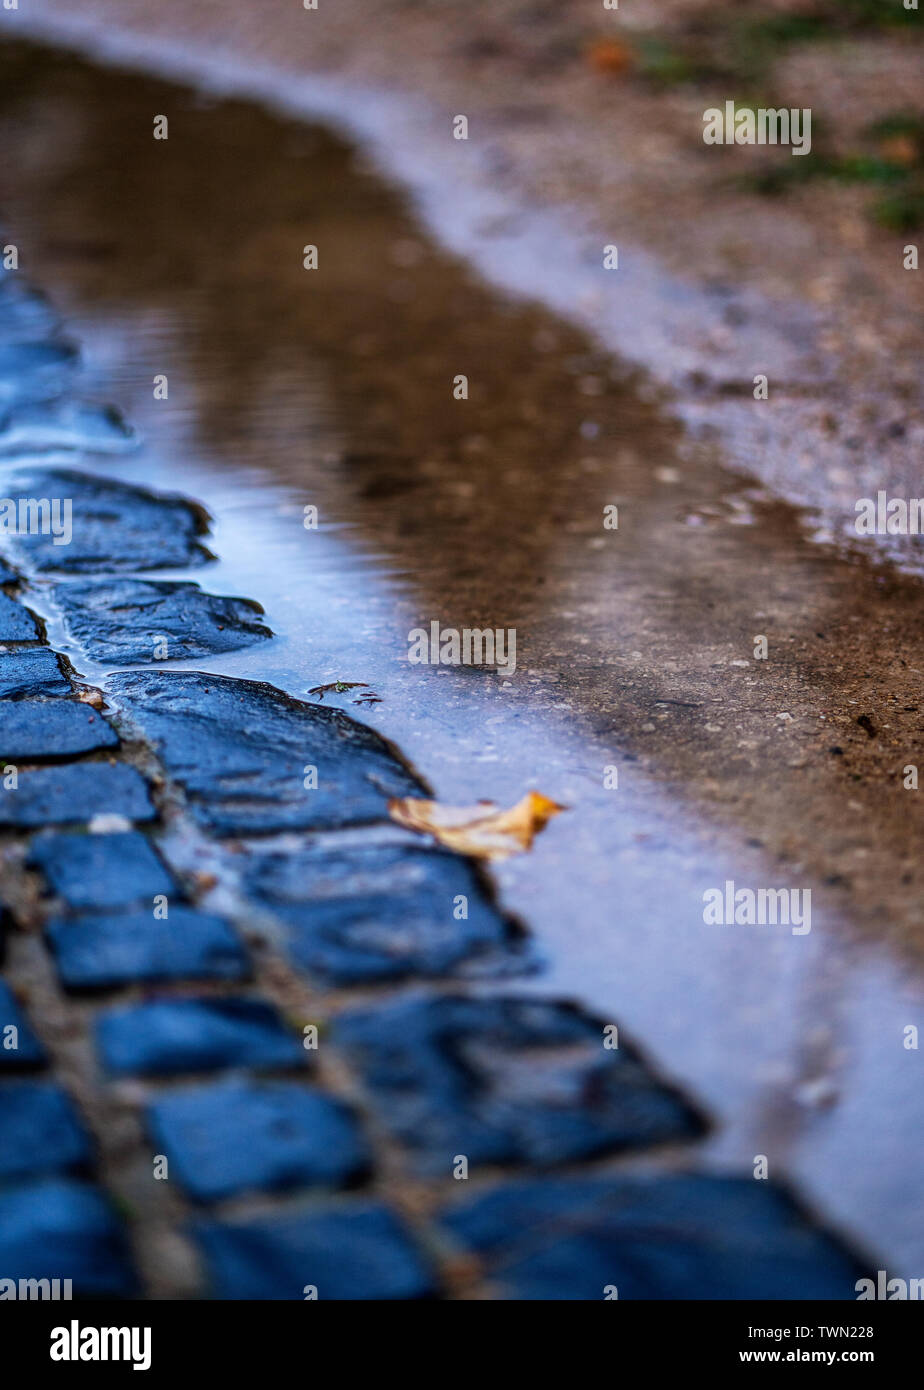 Cobblestones and a puddle of water with a fallen leaf inside. - Stock Image